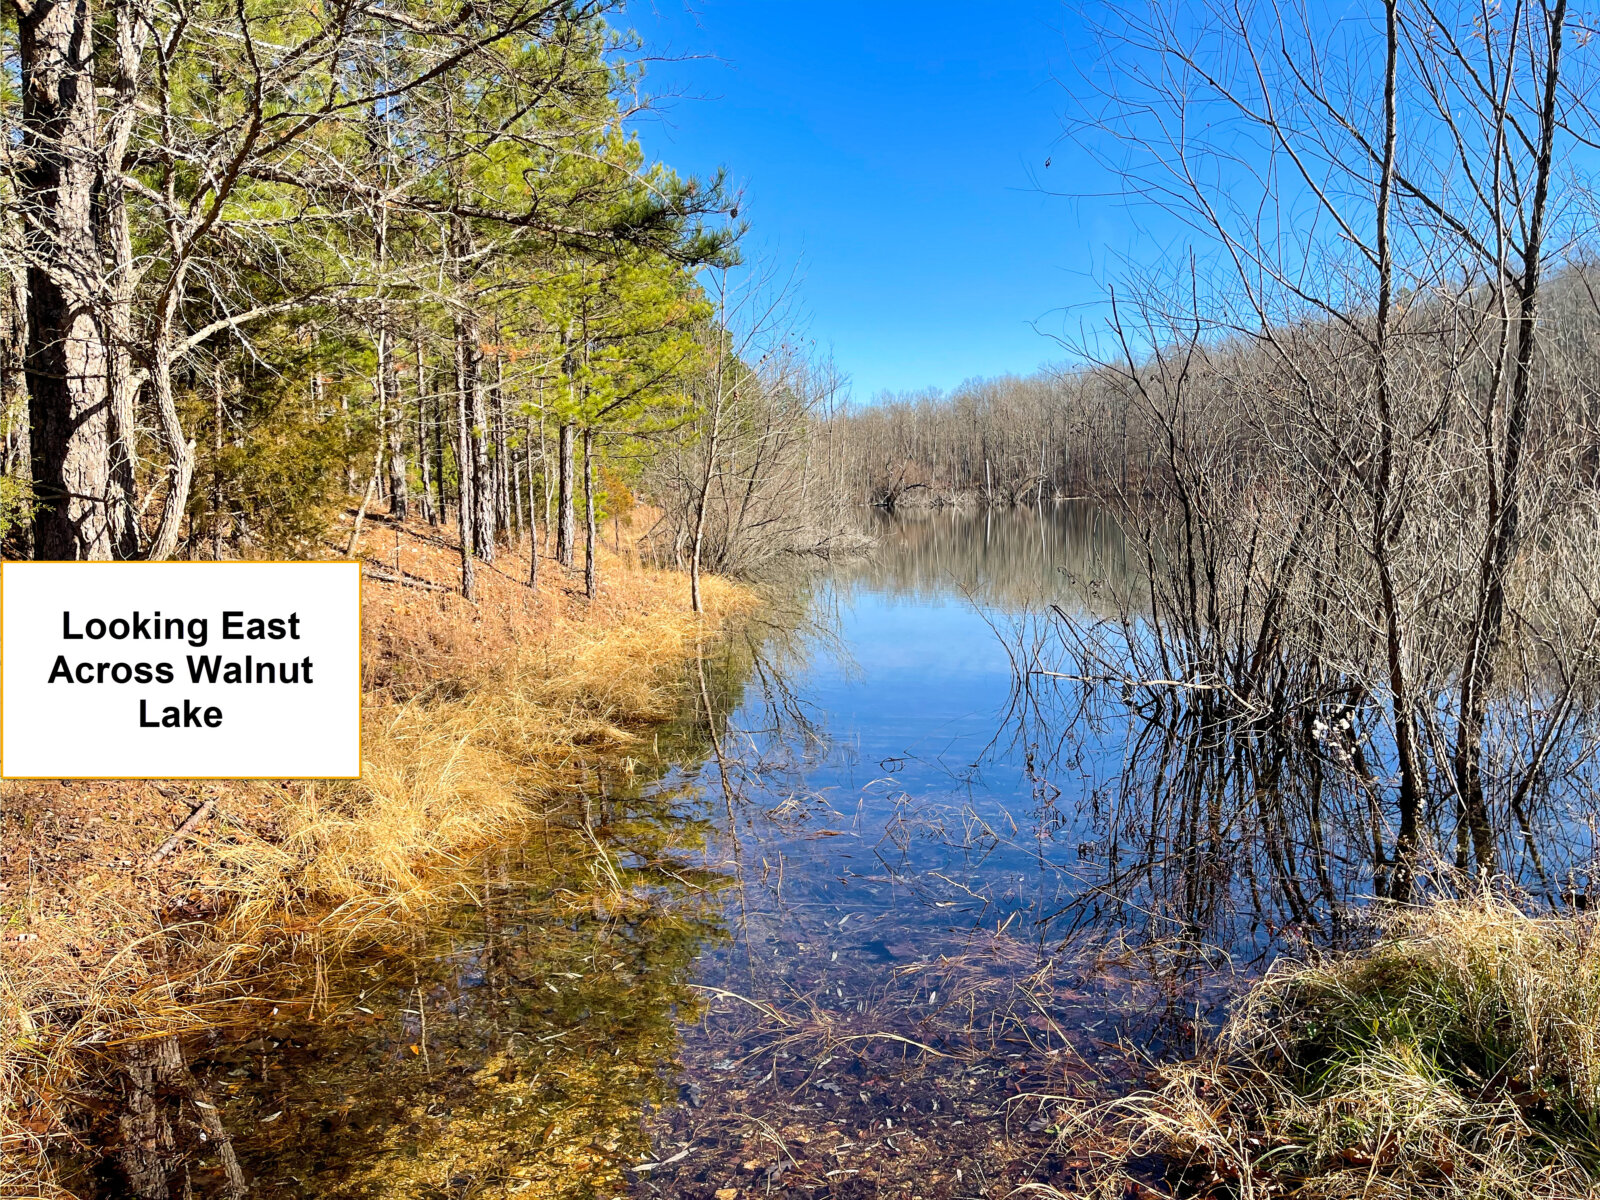 Rural Land For Sale With Lake Access